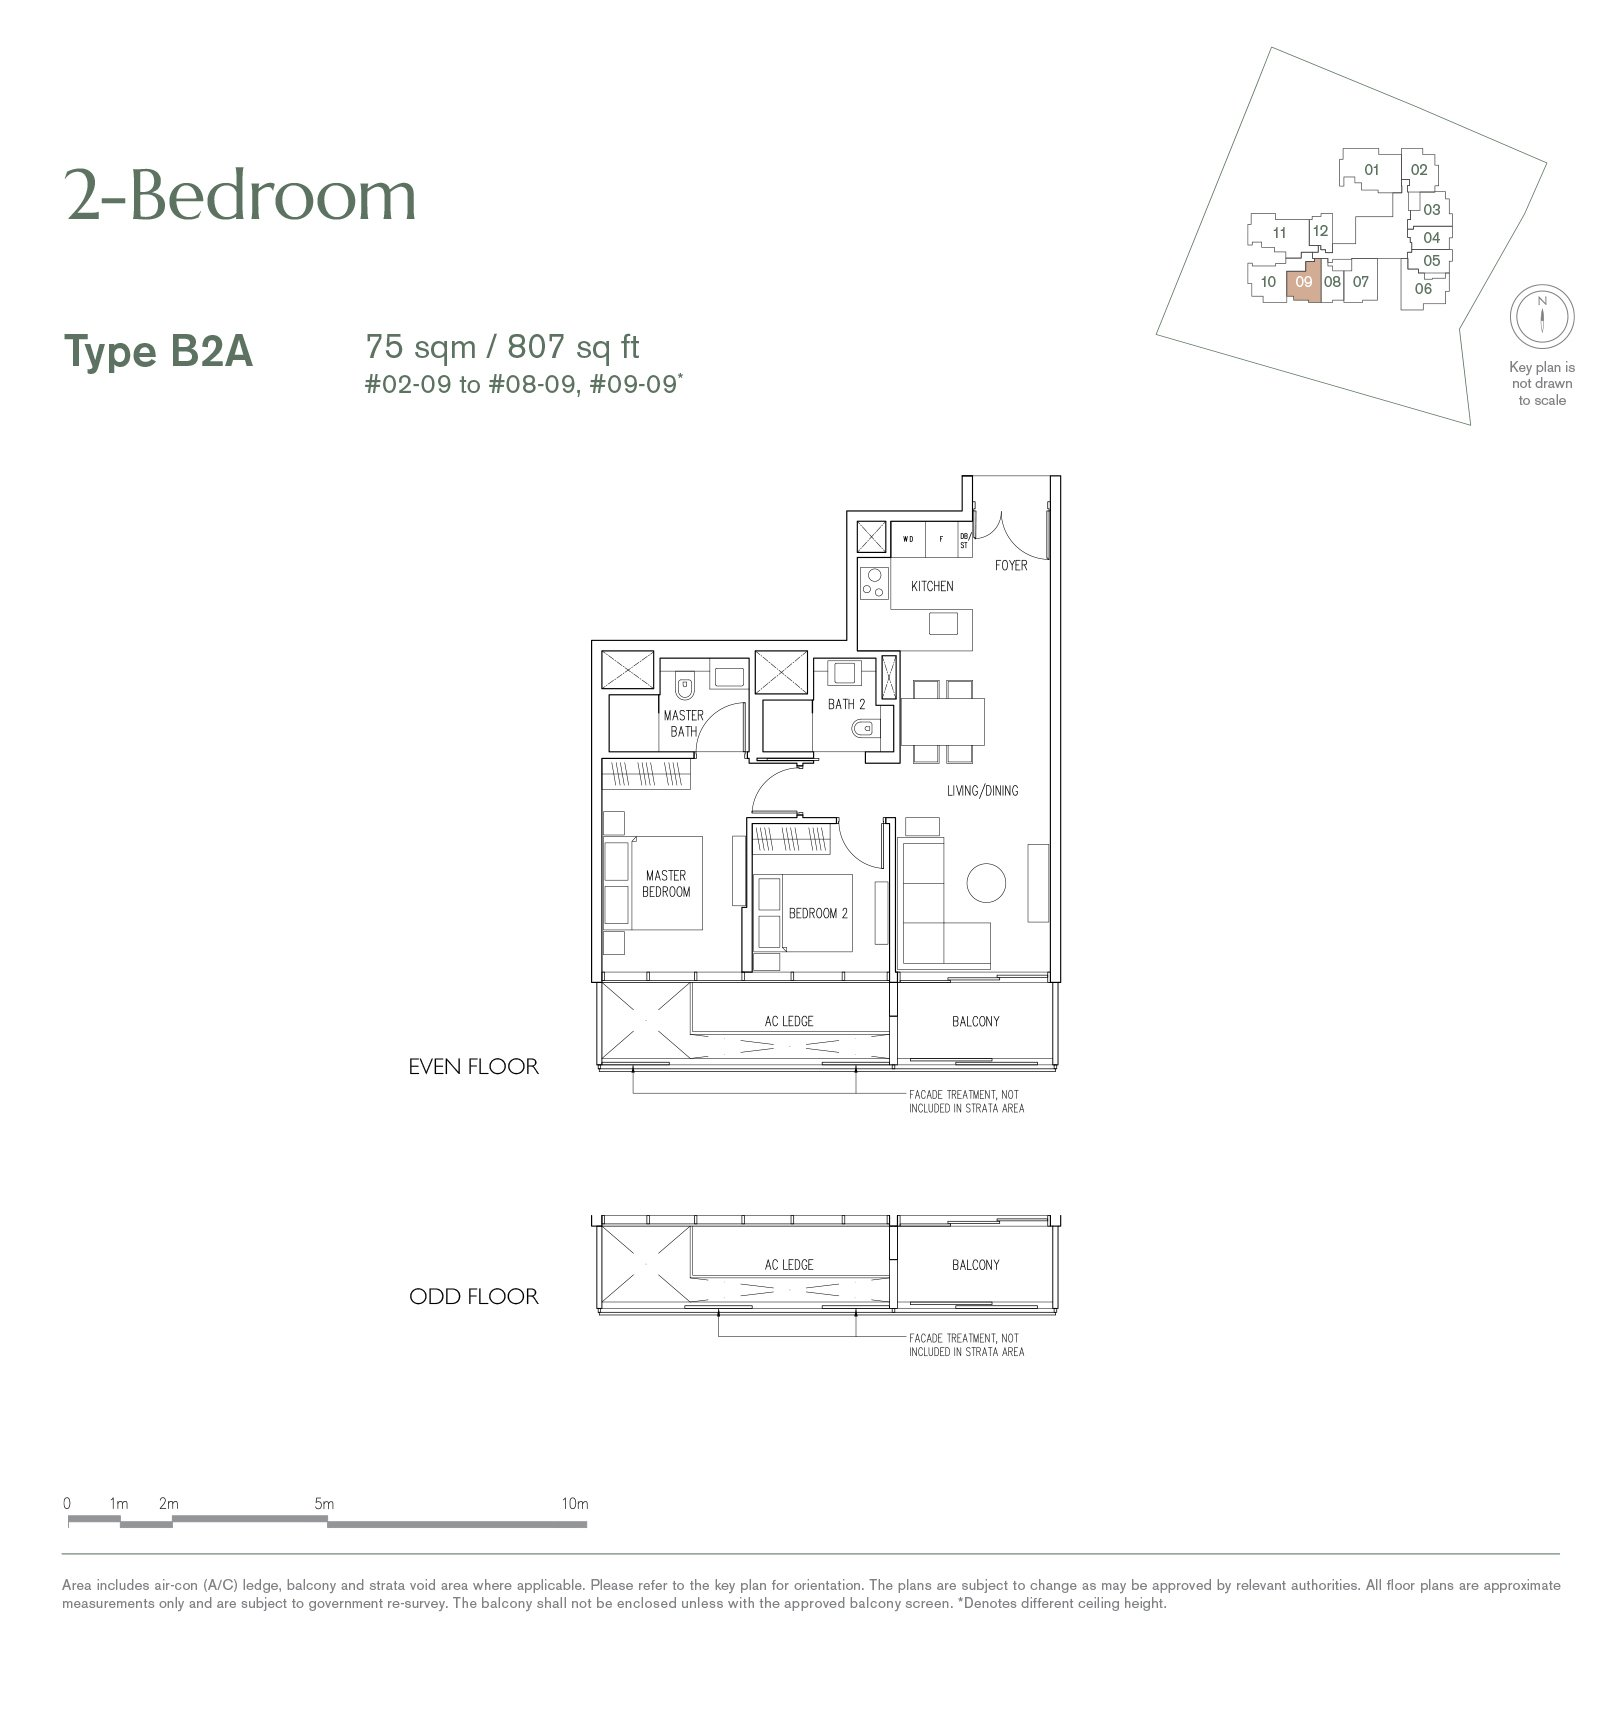 19 Nassim 纳森山公寓 floor plan 2-bedroom-B2A